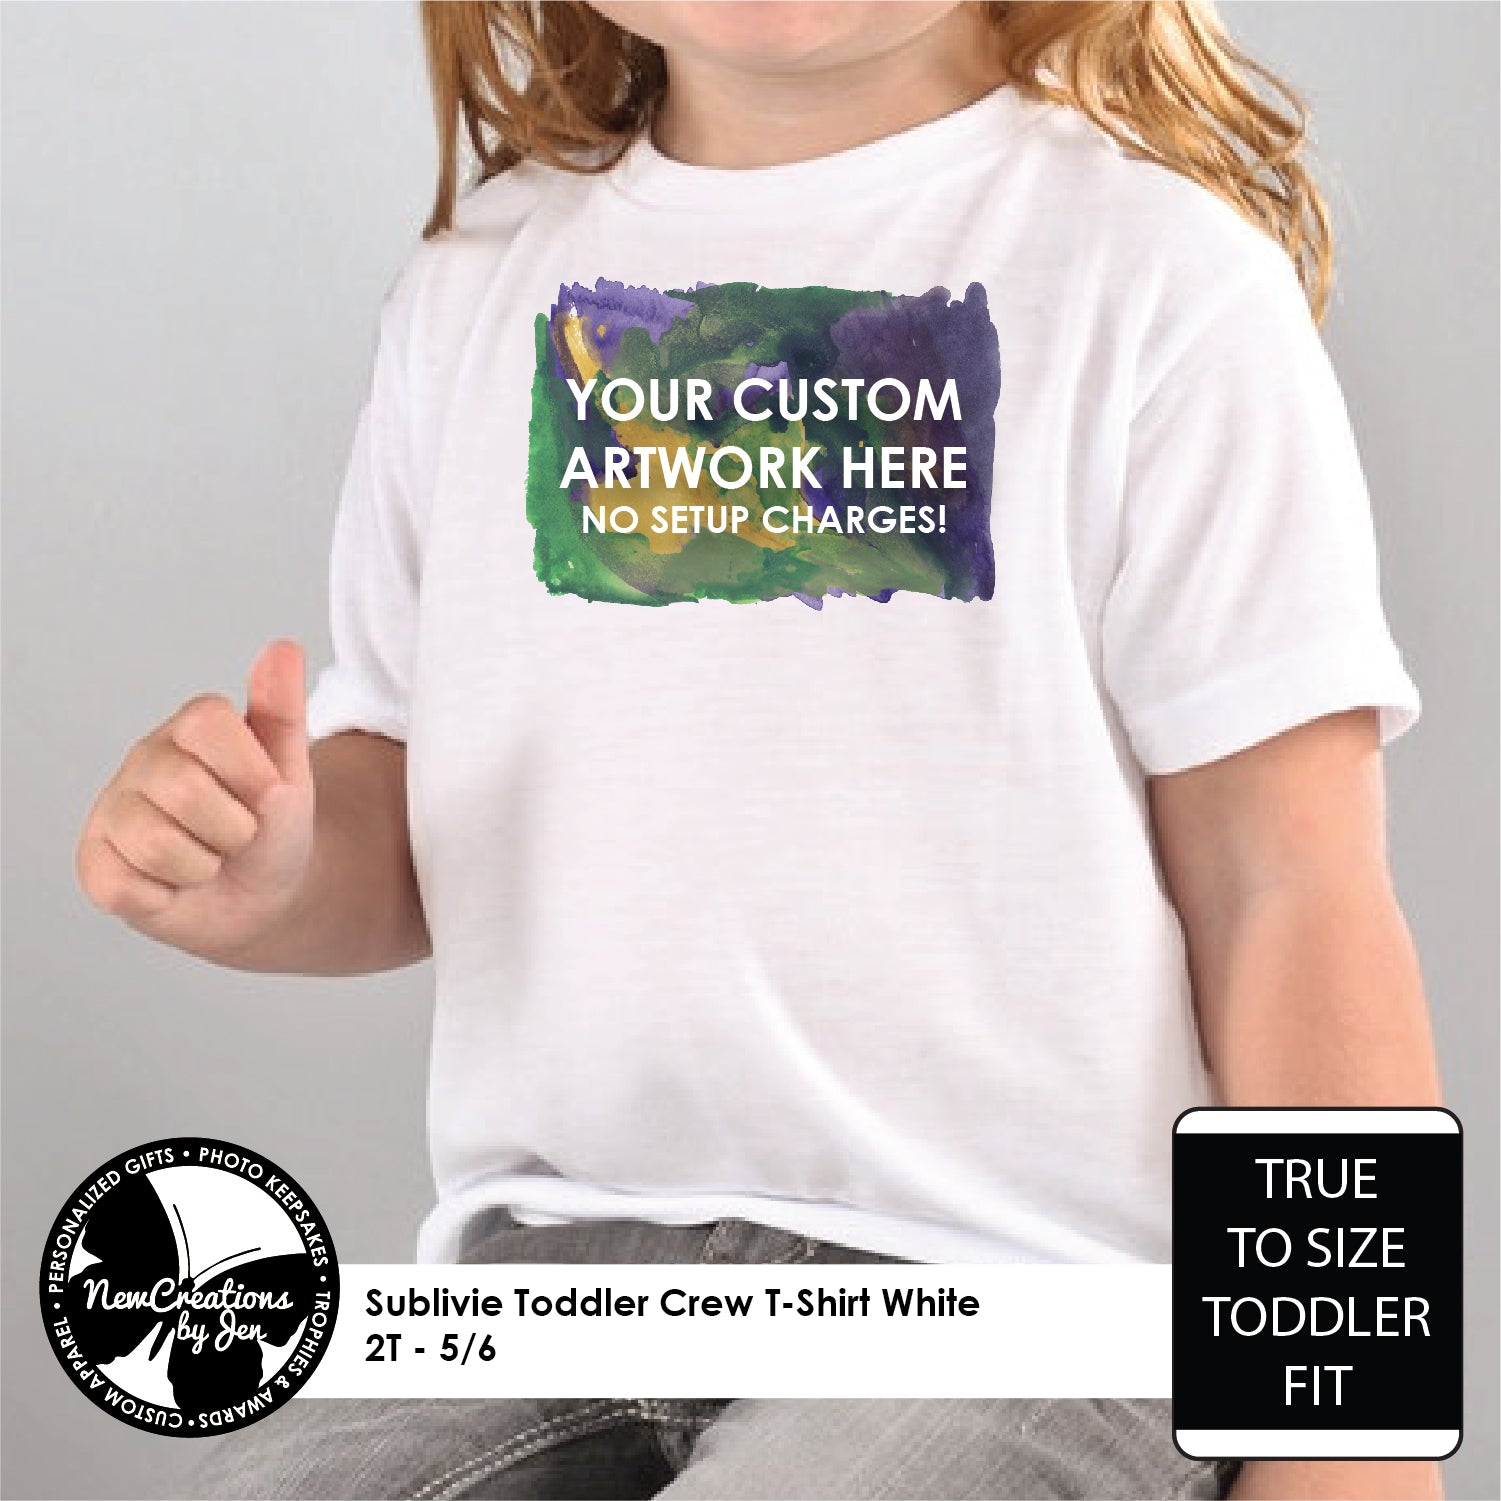 Full Color Tees (Babies & Kids)